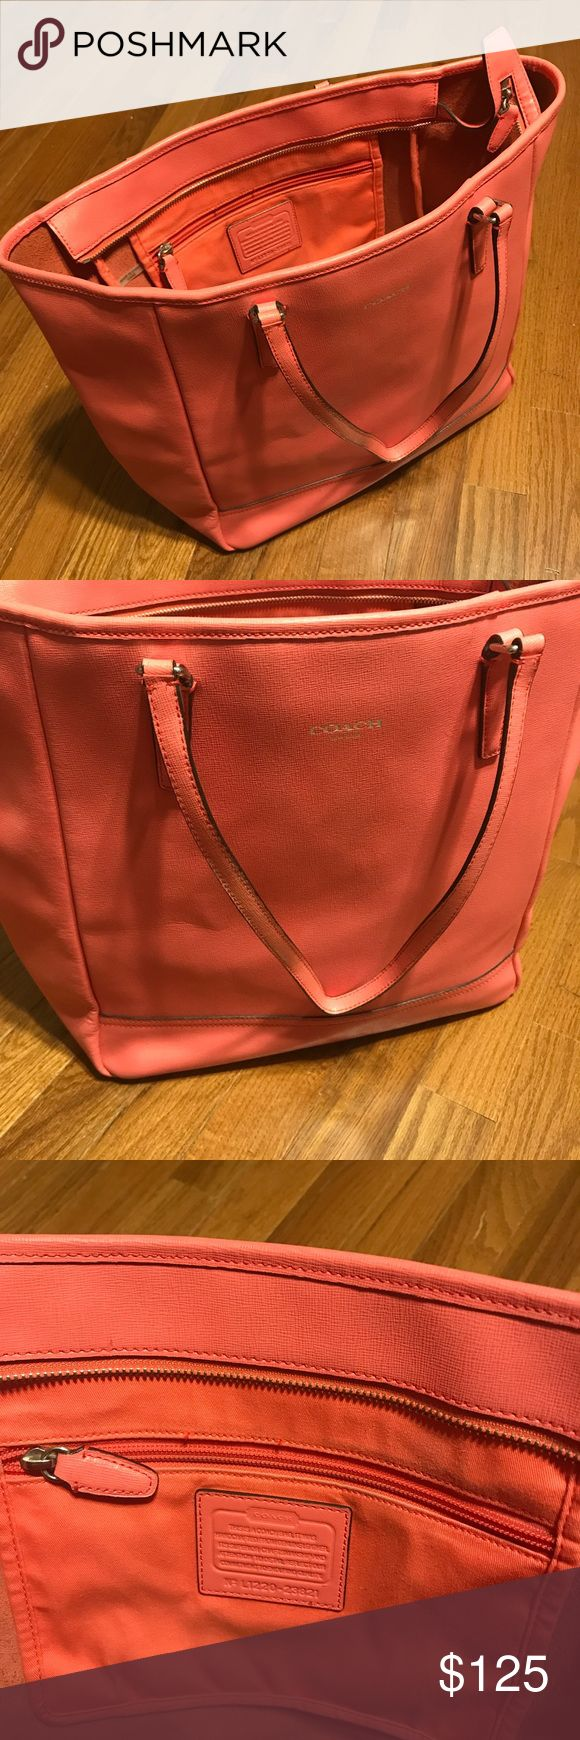 Coach purse Beautiful coral/pinkish large coach purse. Used but has a lot of life left once cleaned. Coach Bags Totes